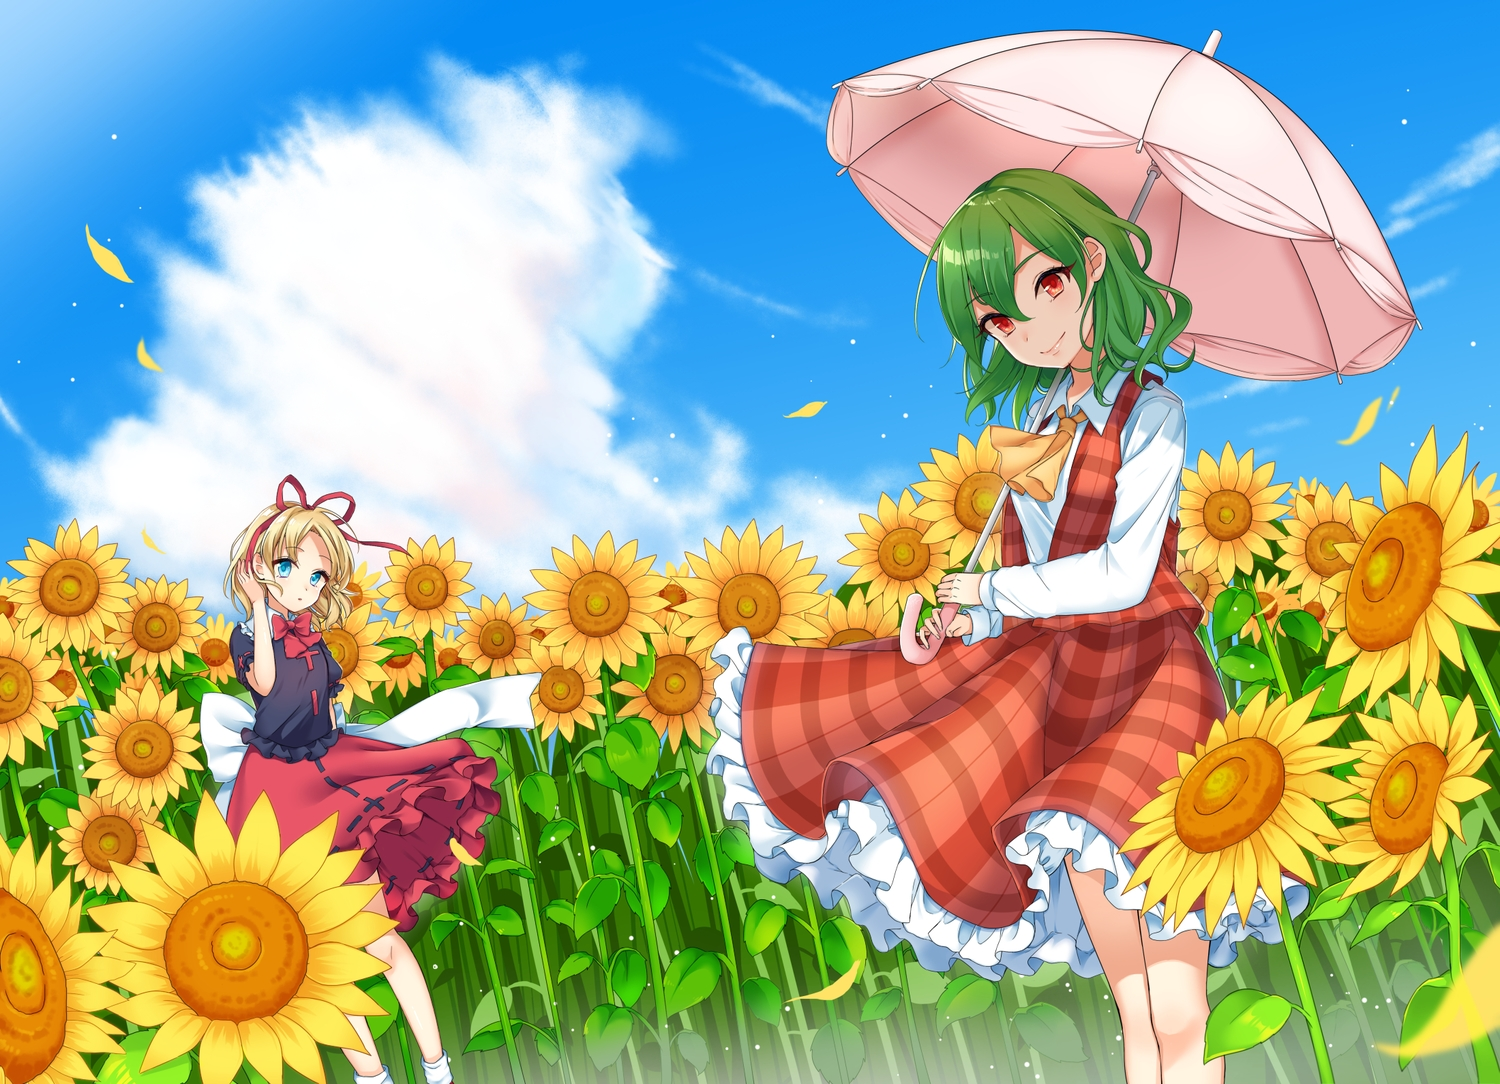 2girls aqua_eyes blonde_hair bow clouds dress flowers green_hair kazami_yuuka mameda11 medicine_melancholy orange_eyes petals ribbons short_hair sky sunflower touhou umbrella